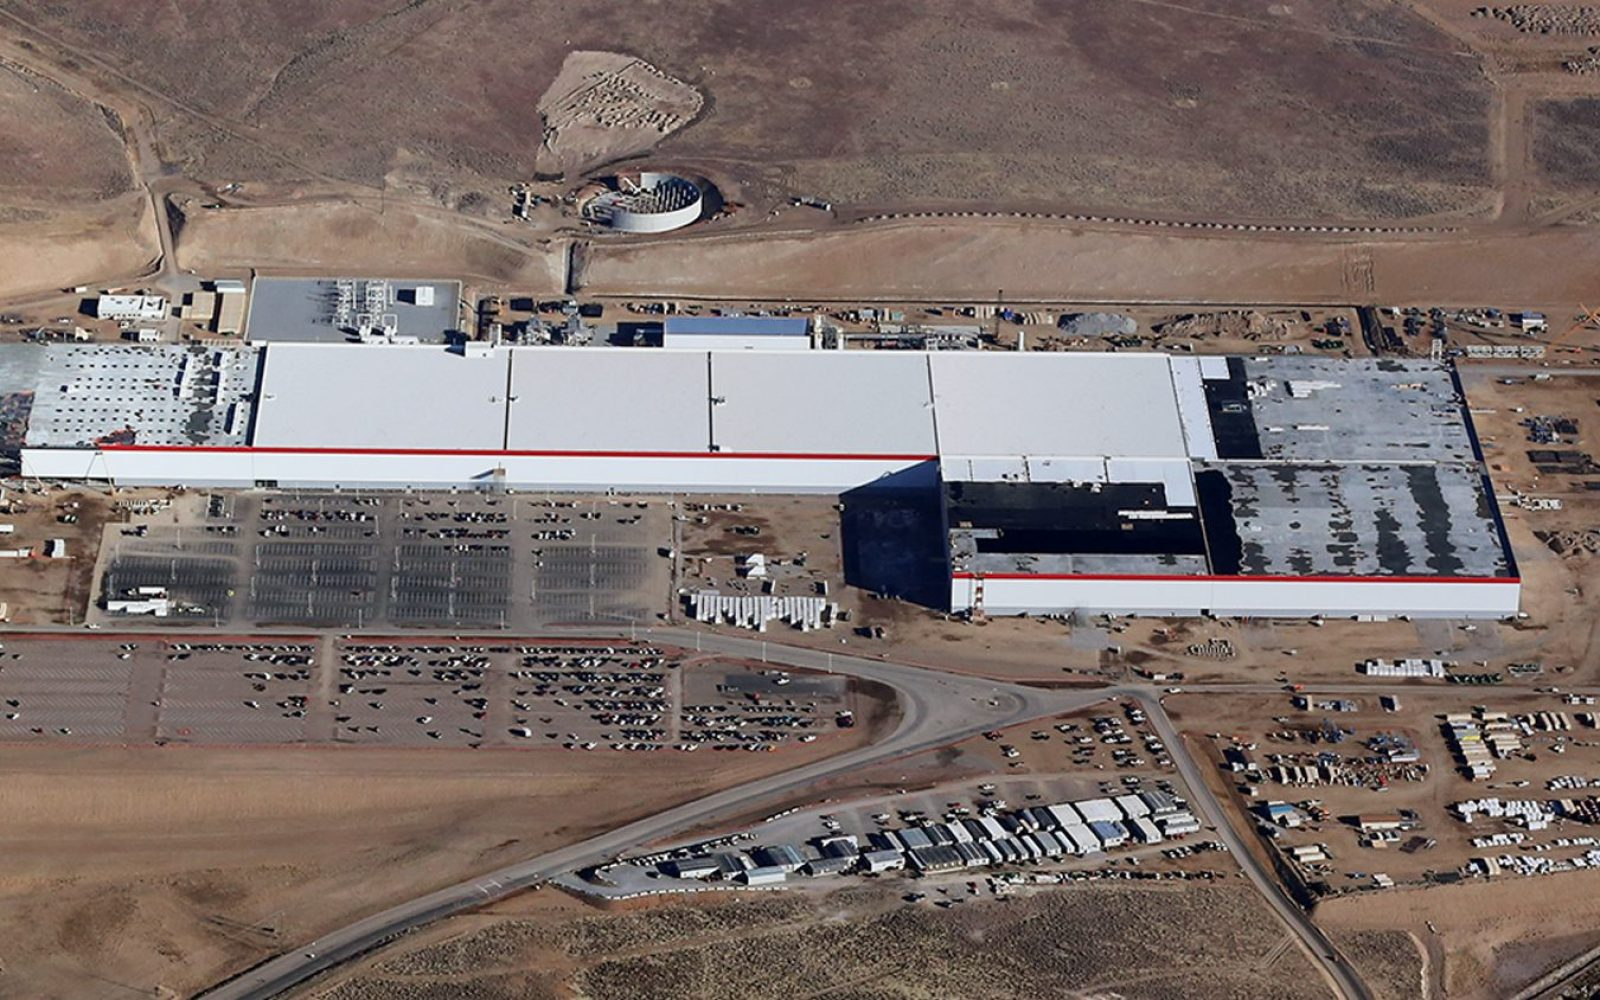 Tesla reveals more details about 'Gigafactory 1': Model 3 battery pack, largest rooftop solar array in the world (70MW), & more